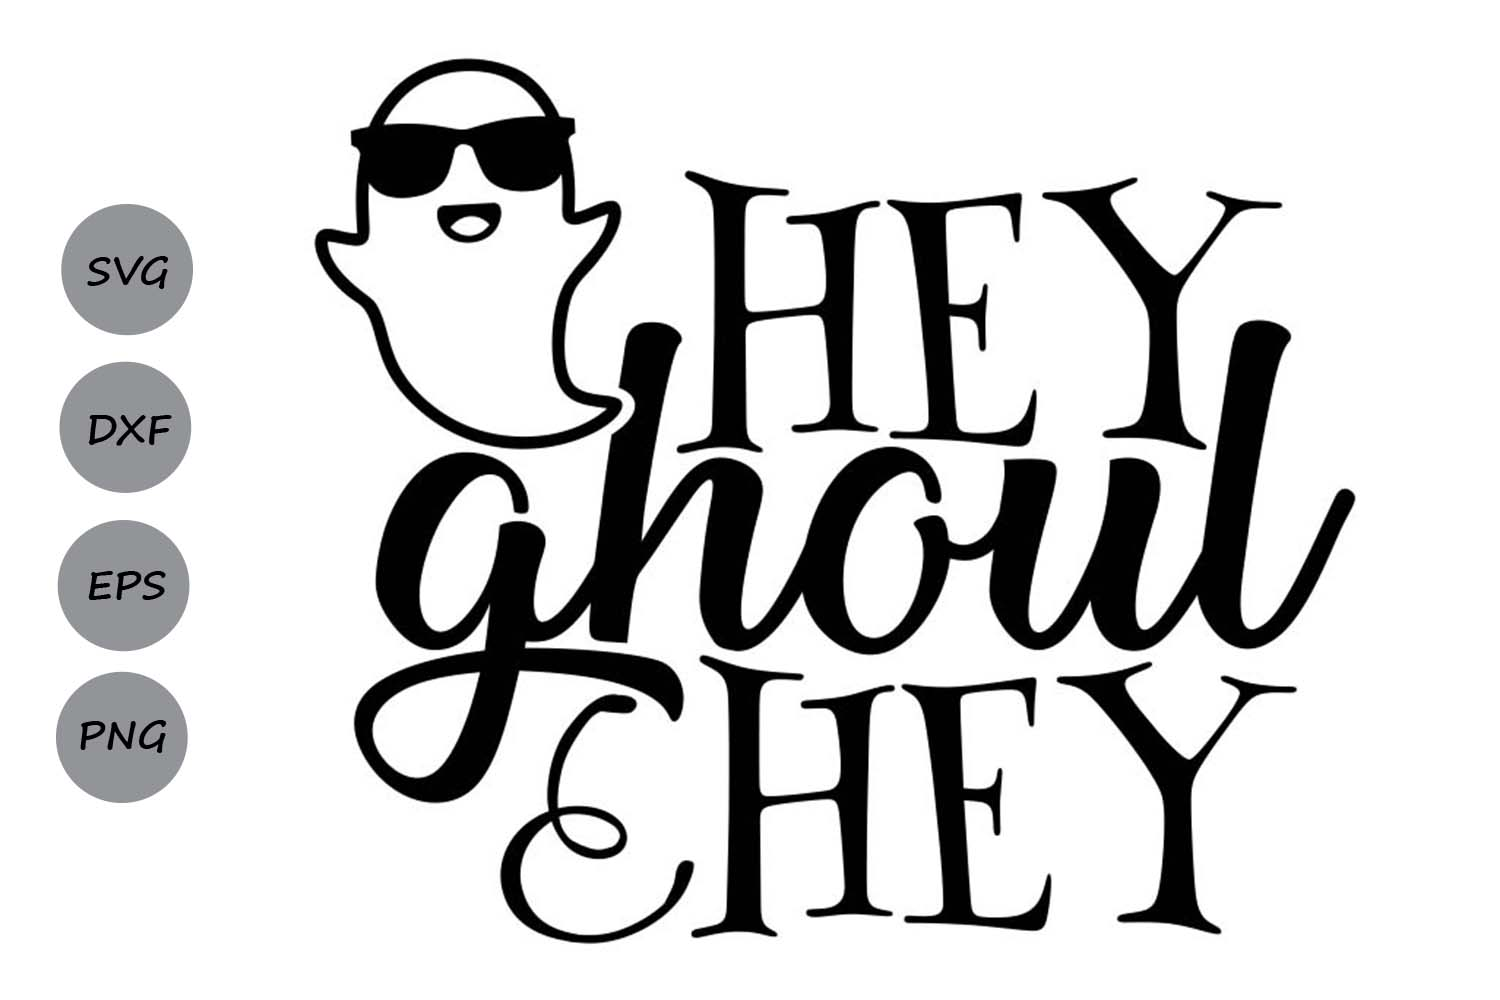 Download Free Hey Ghoul Hey Graphic By Cosmosfineart Creative Fabrica for Cricut Explore, Silhouette and other cutting machines.